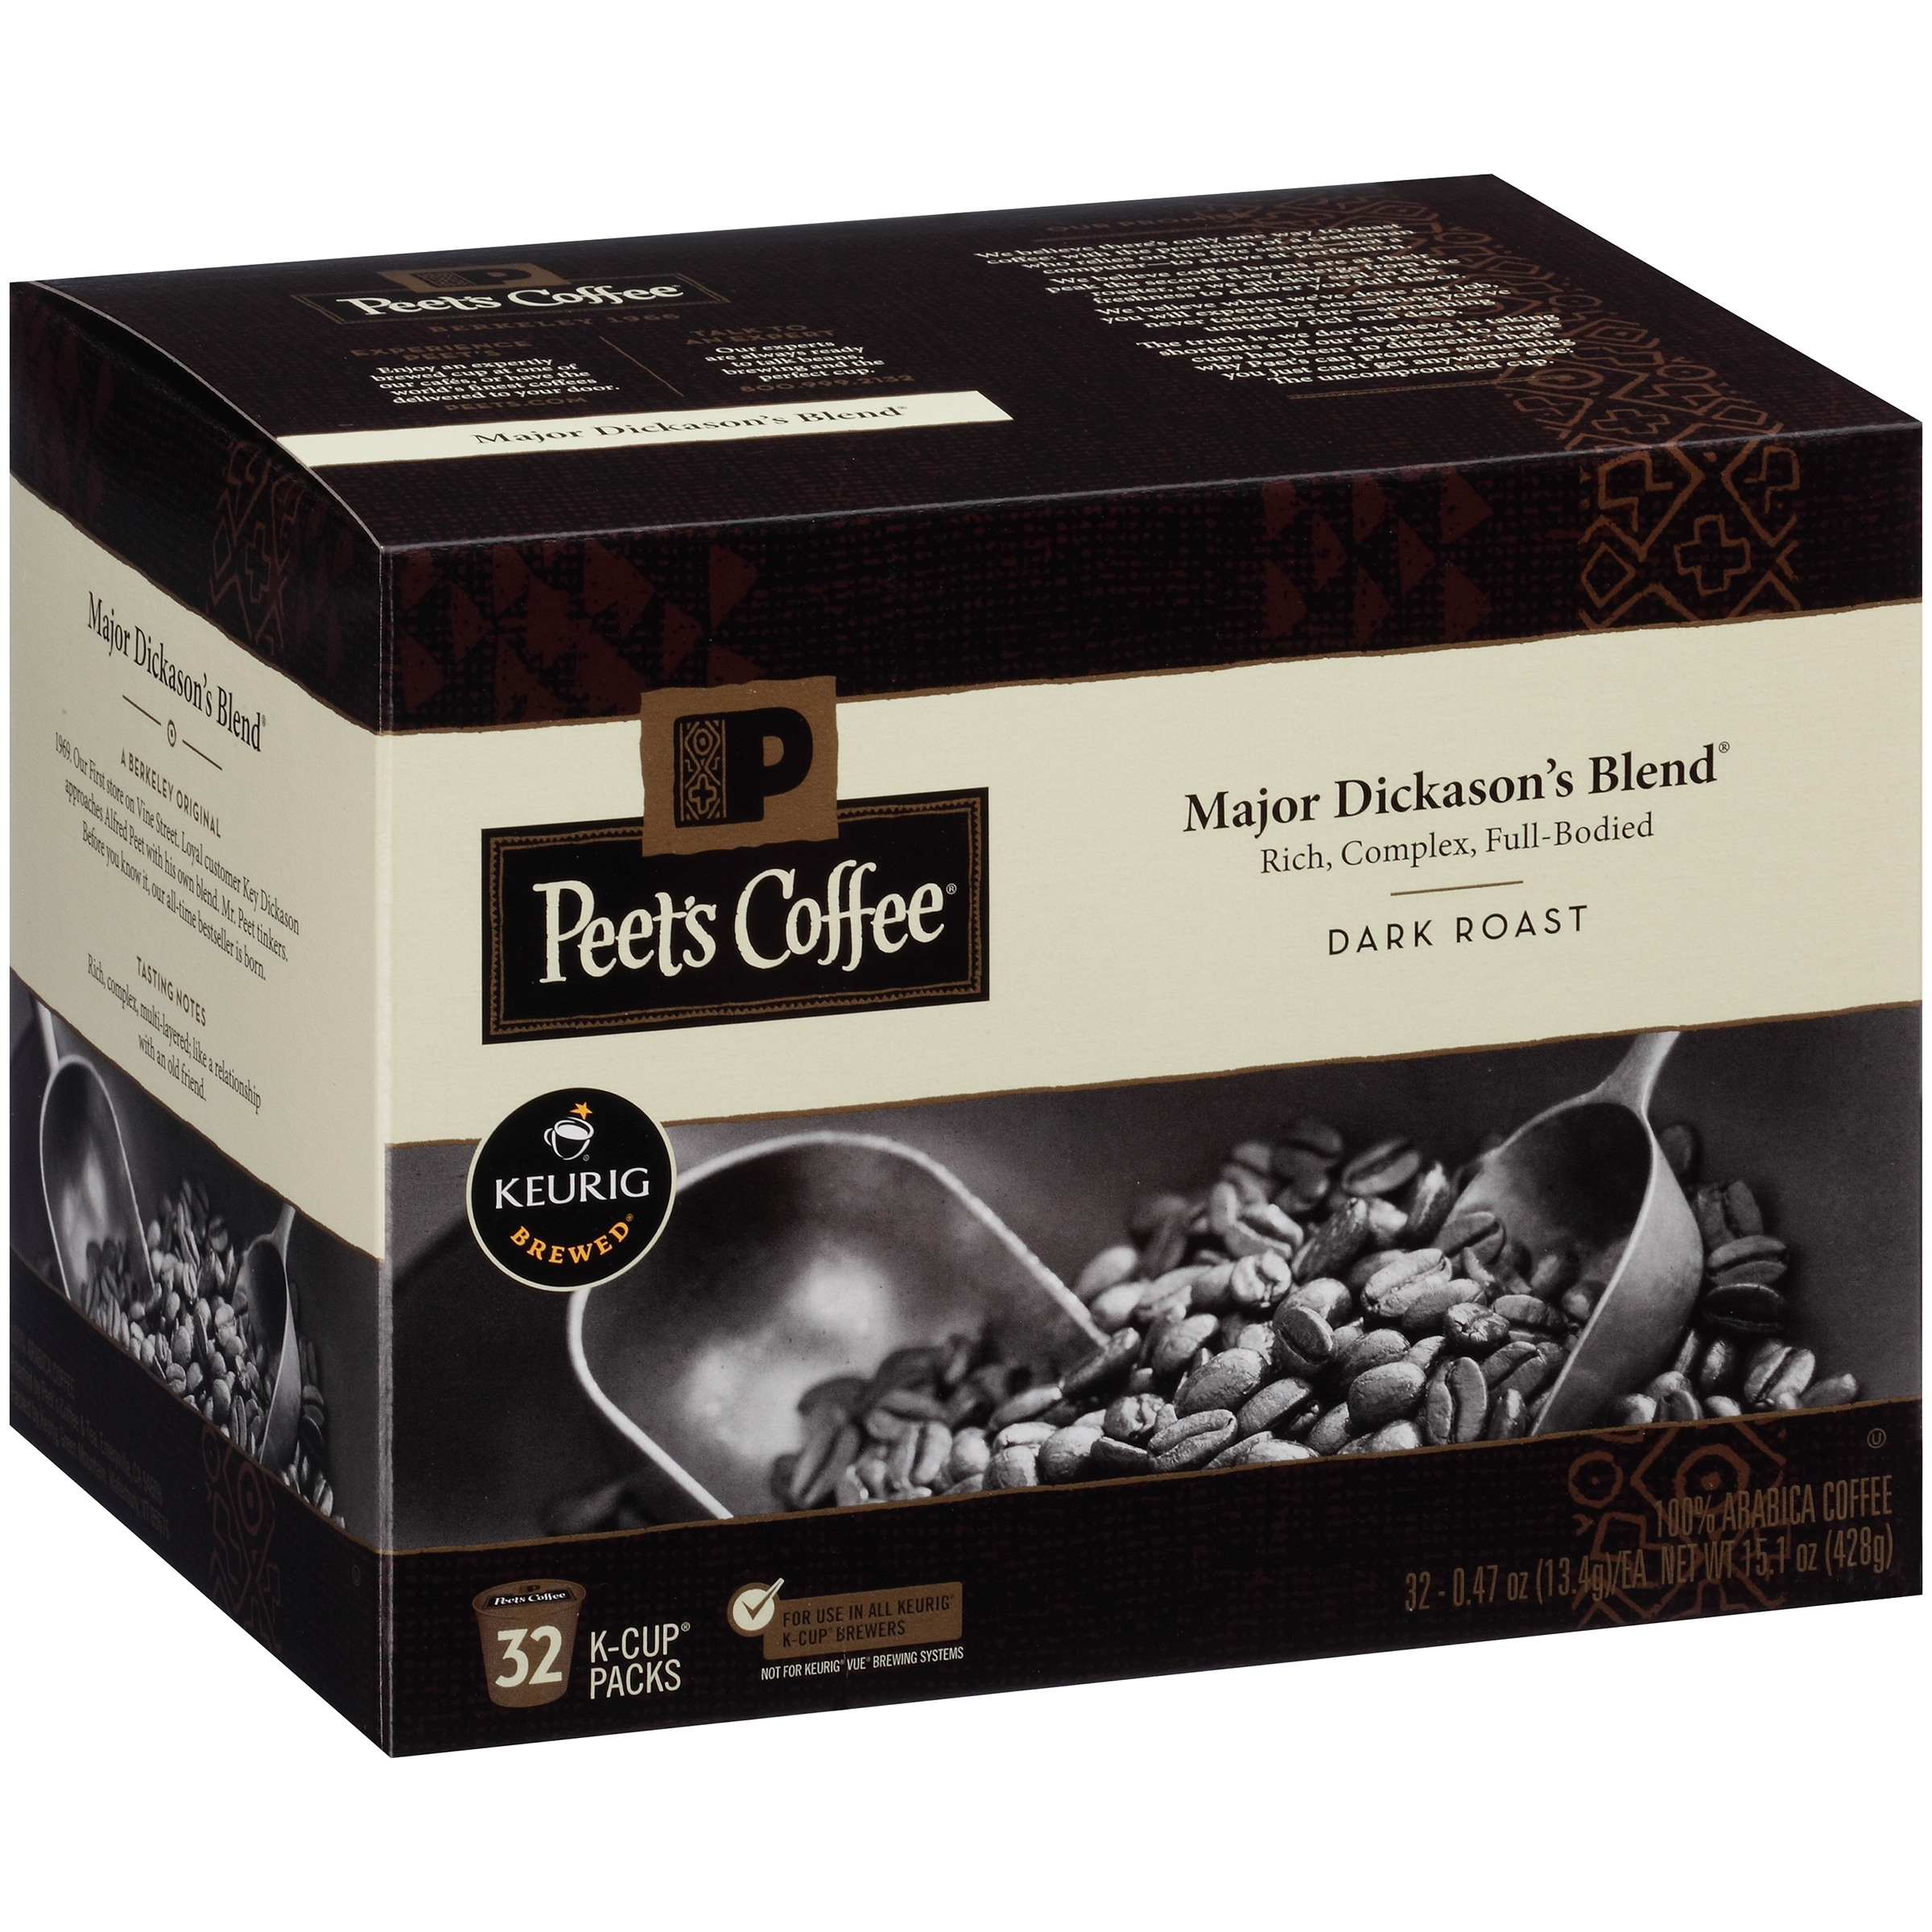 Peet's Coffee Major Dickason's Blend Dark Roast Coffee K-Cup Packs, 0.47 oz, 32 count